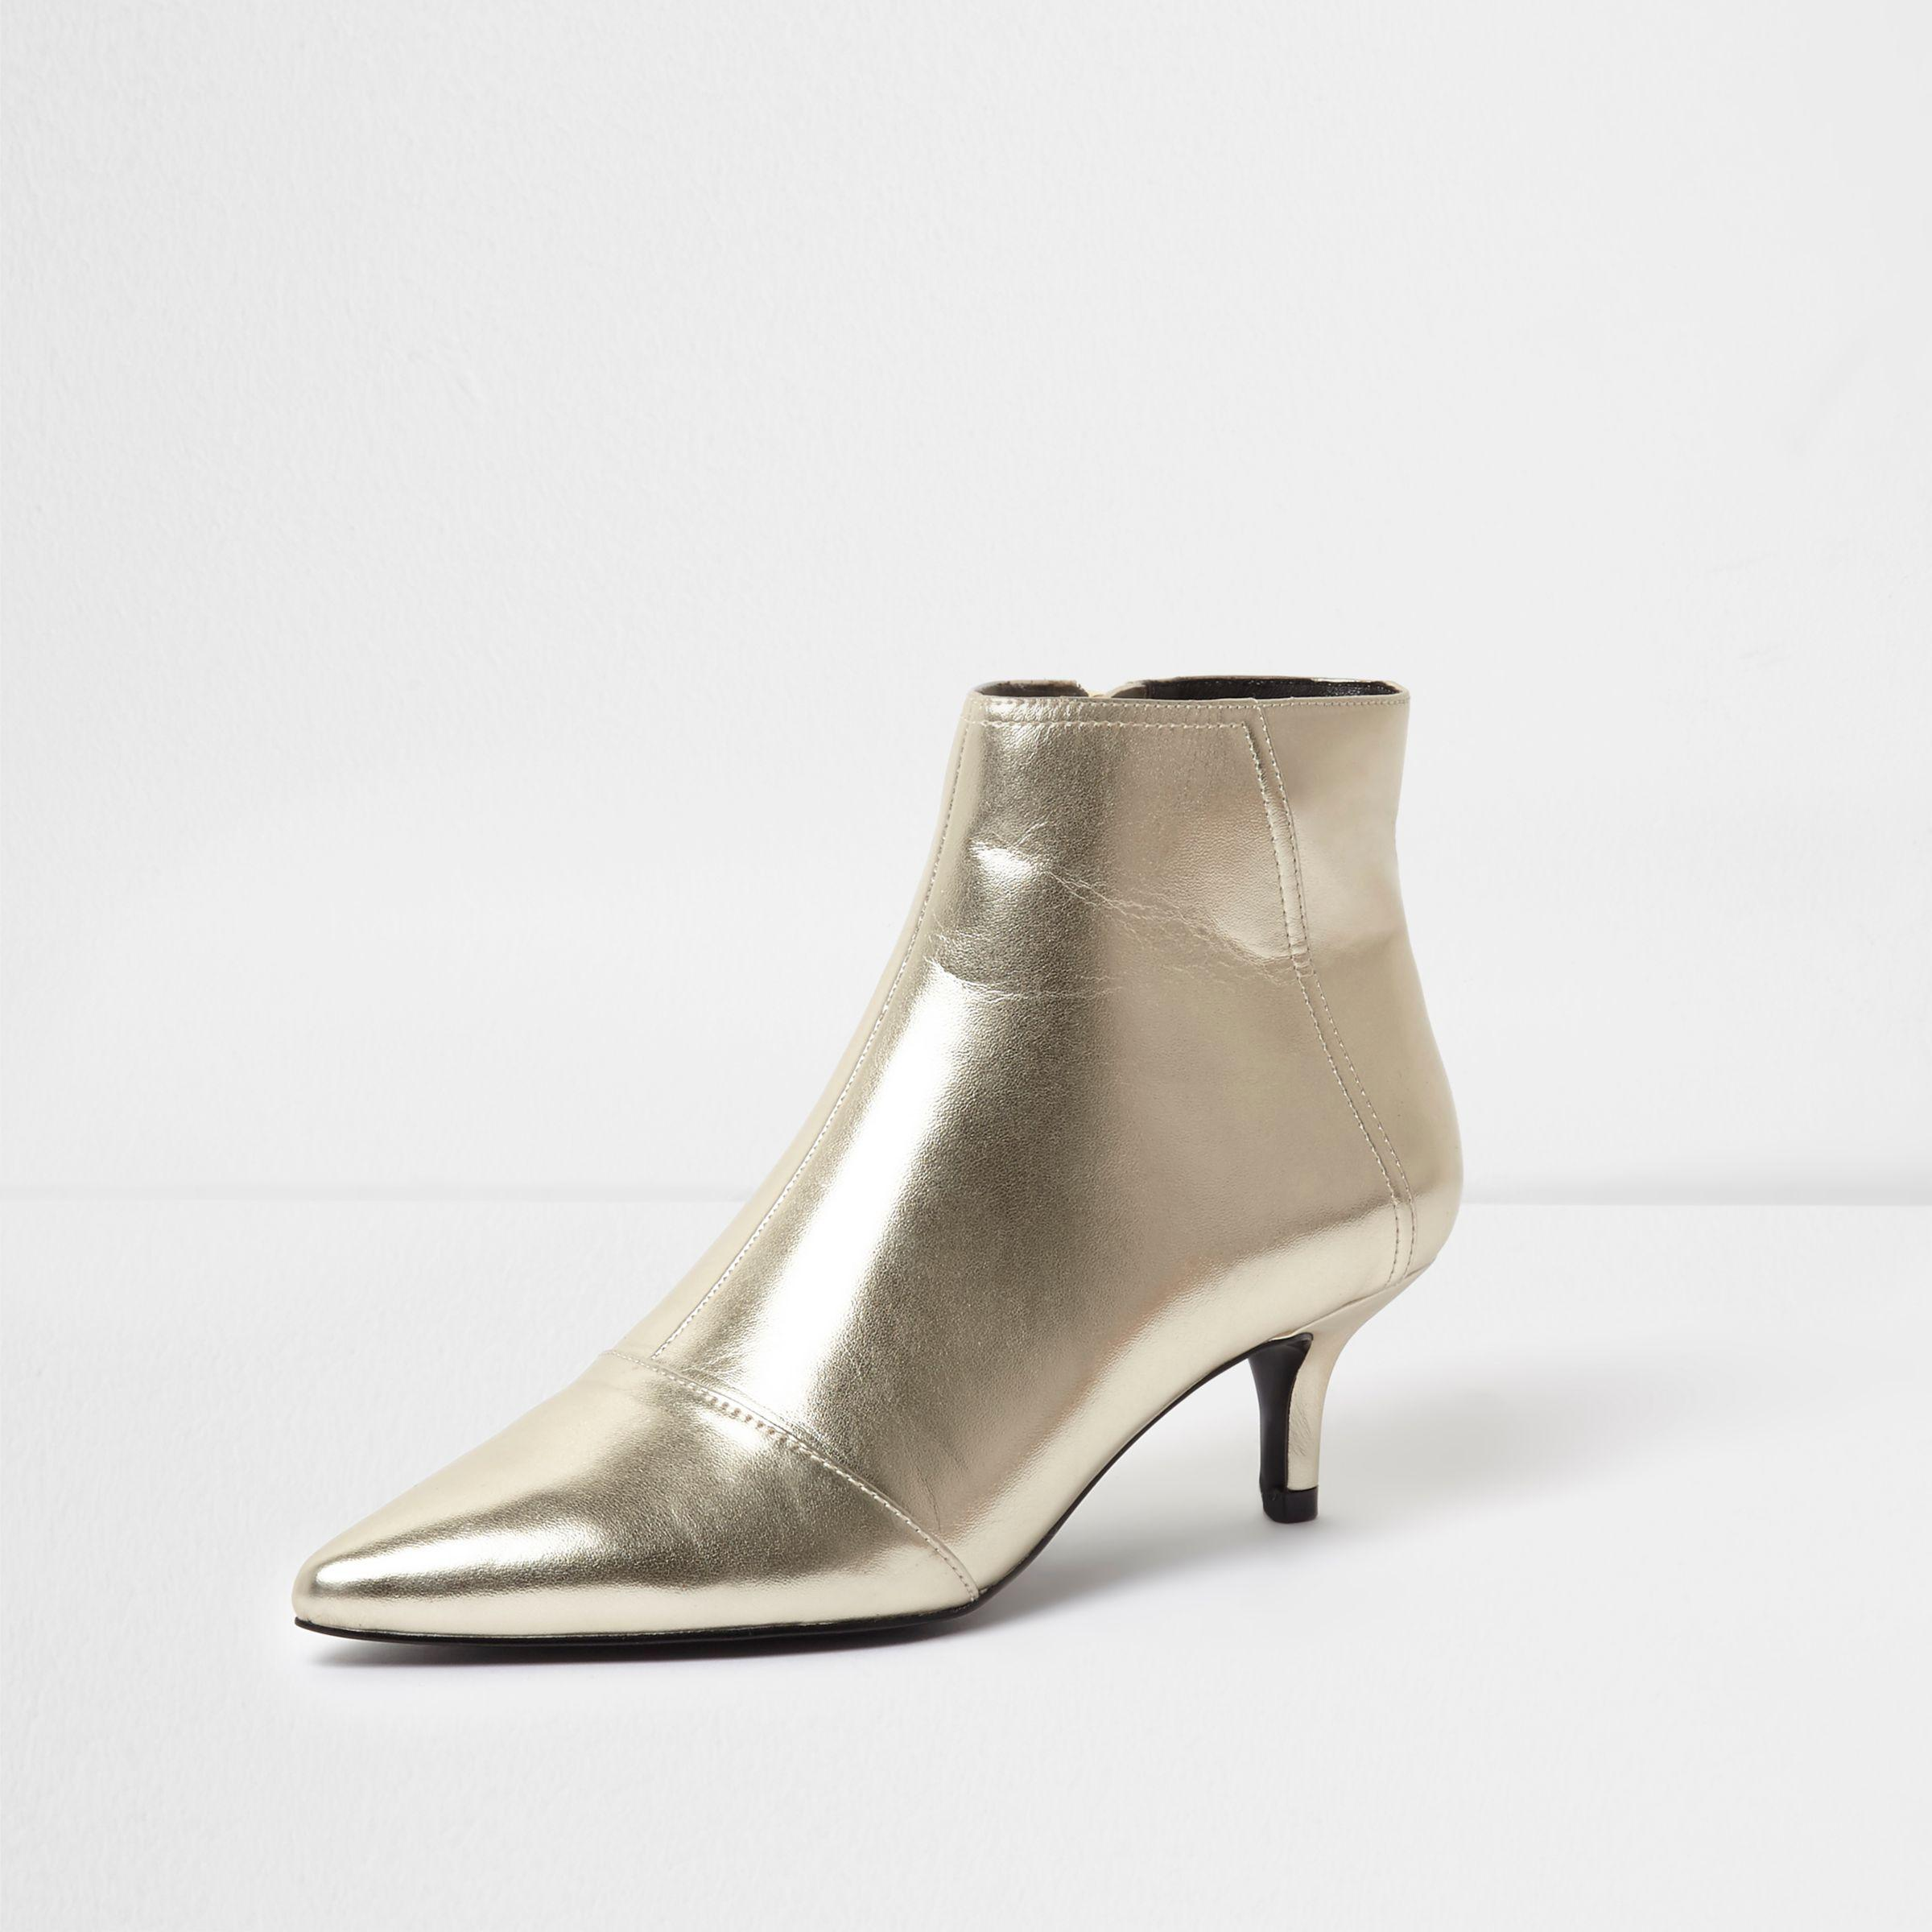 a8d33a7548 River Island Gold Metallic Pointed Kitten Heel Ankle Boots in ...